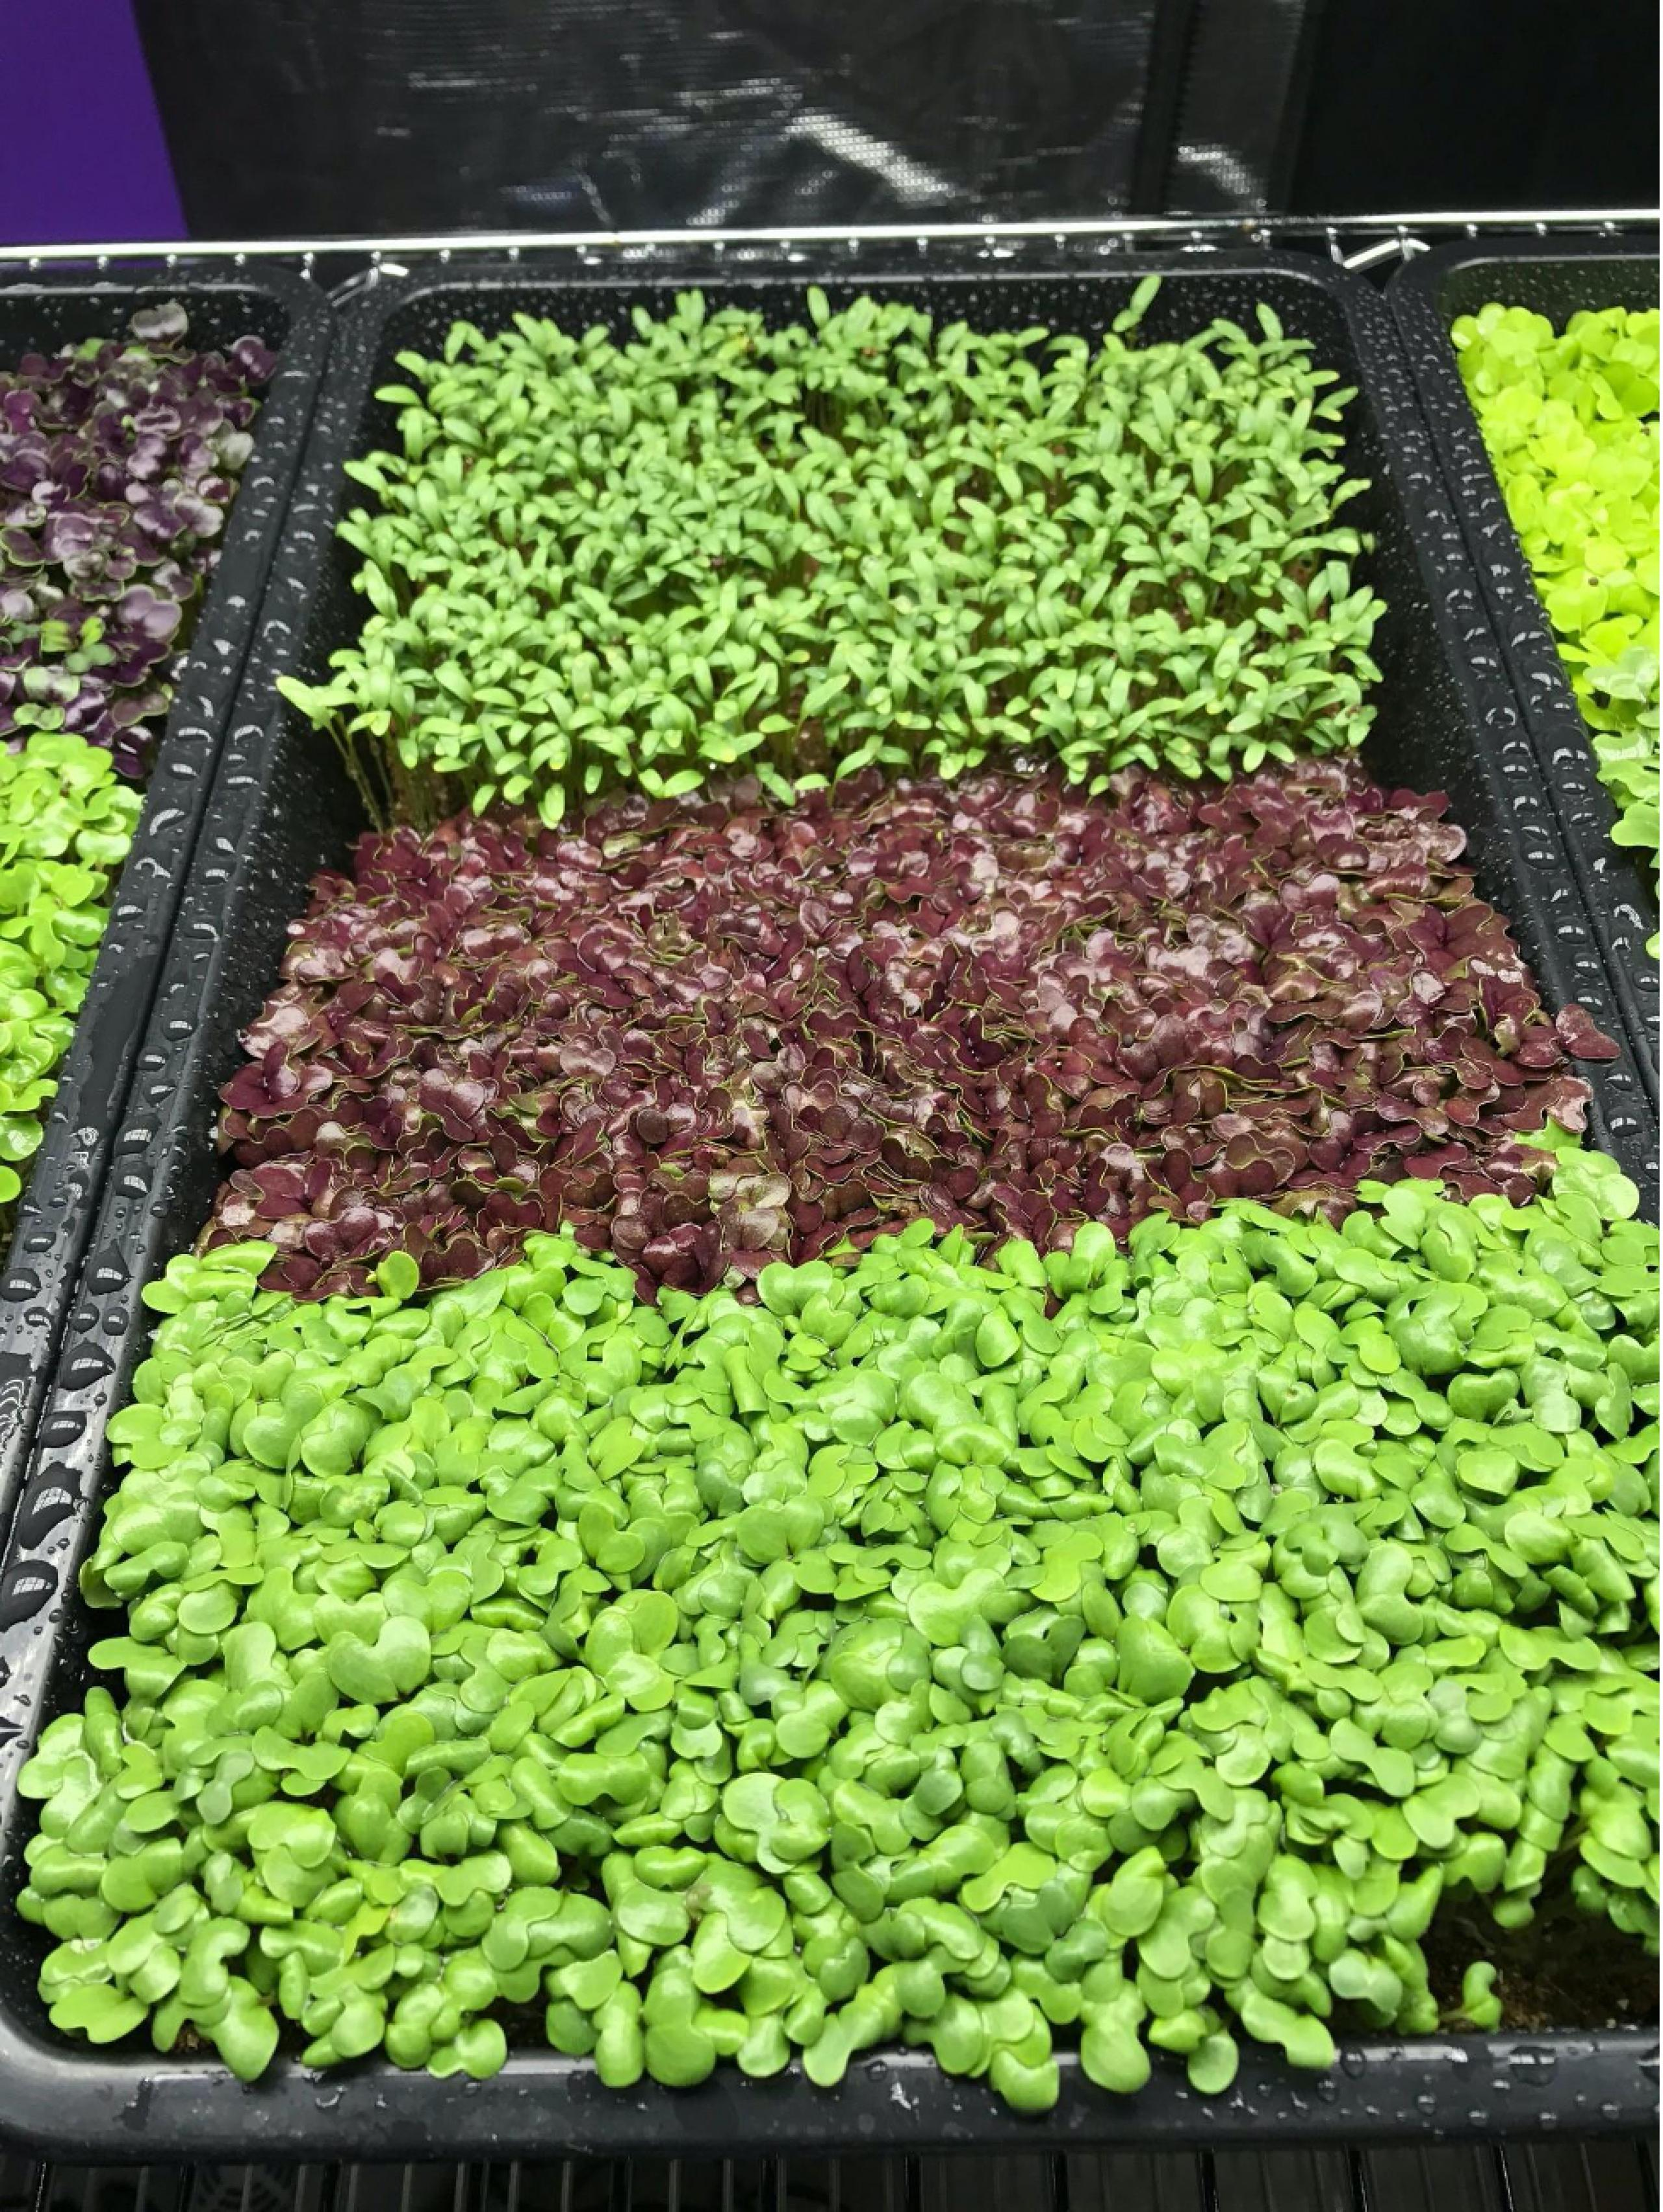 A broad, shallow growing tray with three kinds of plants, from near (lower part of image) to far (upper) part of image. Broad-leafed greens are nearest, red-leafed plants in the middle, with elongated-green leafed plants furthest.